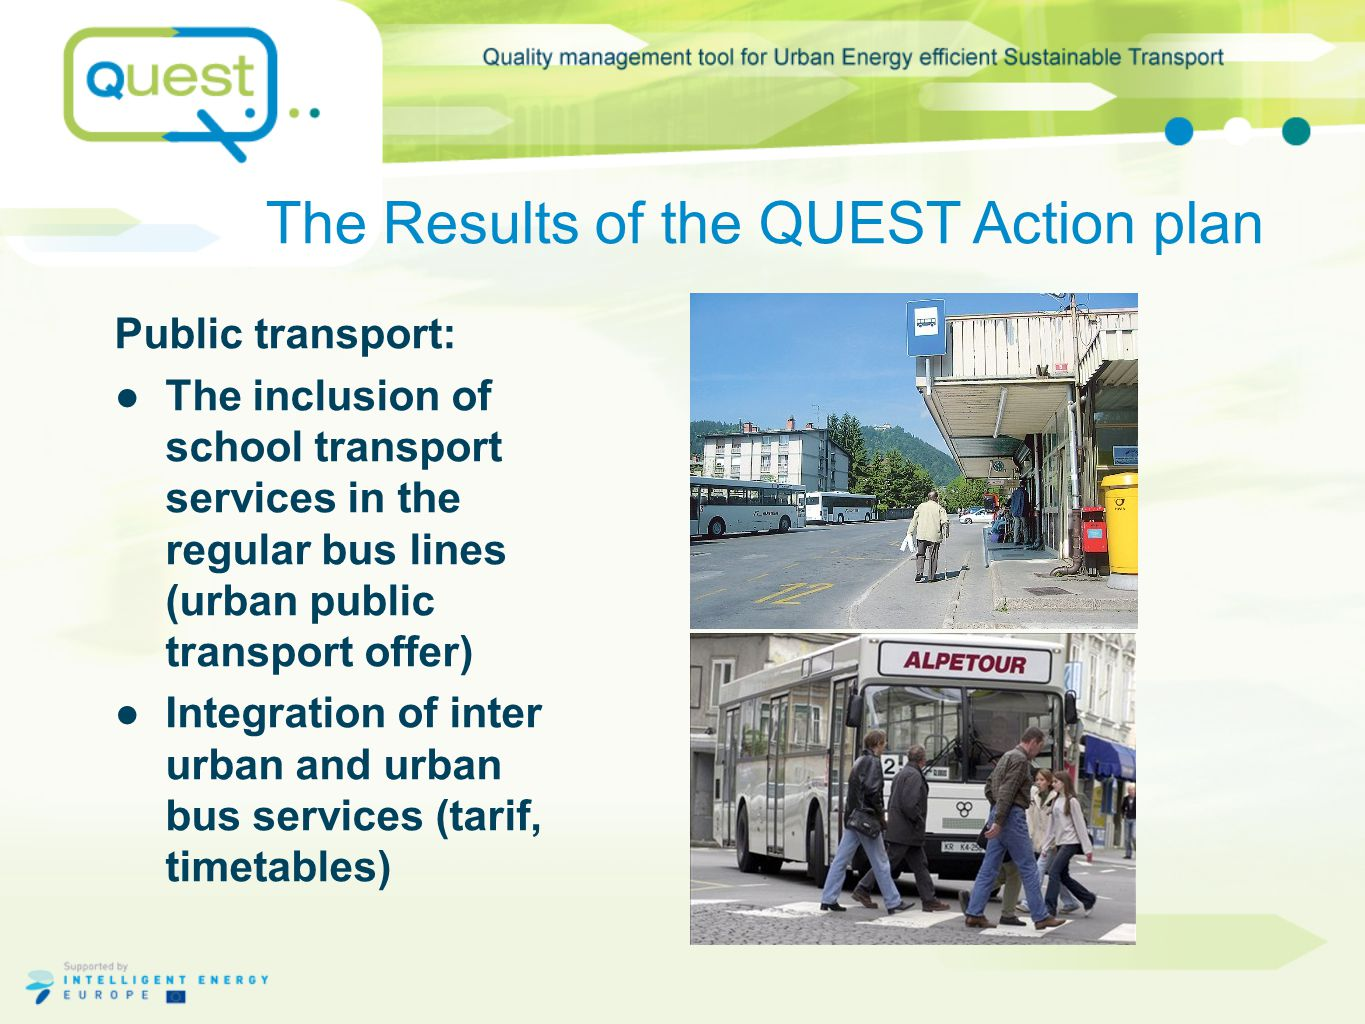 The Results of the QUEST Action plan Public transport: ●The inclusion of school transport services in the regular bus lines (urban public transport offer) ●Integration of inter urban and urban bus services (tarif, timetables)